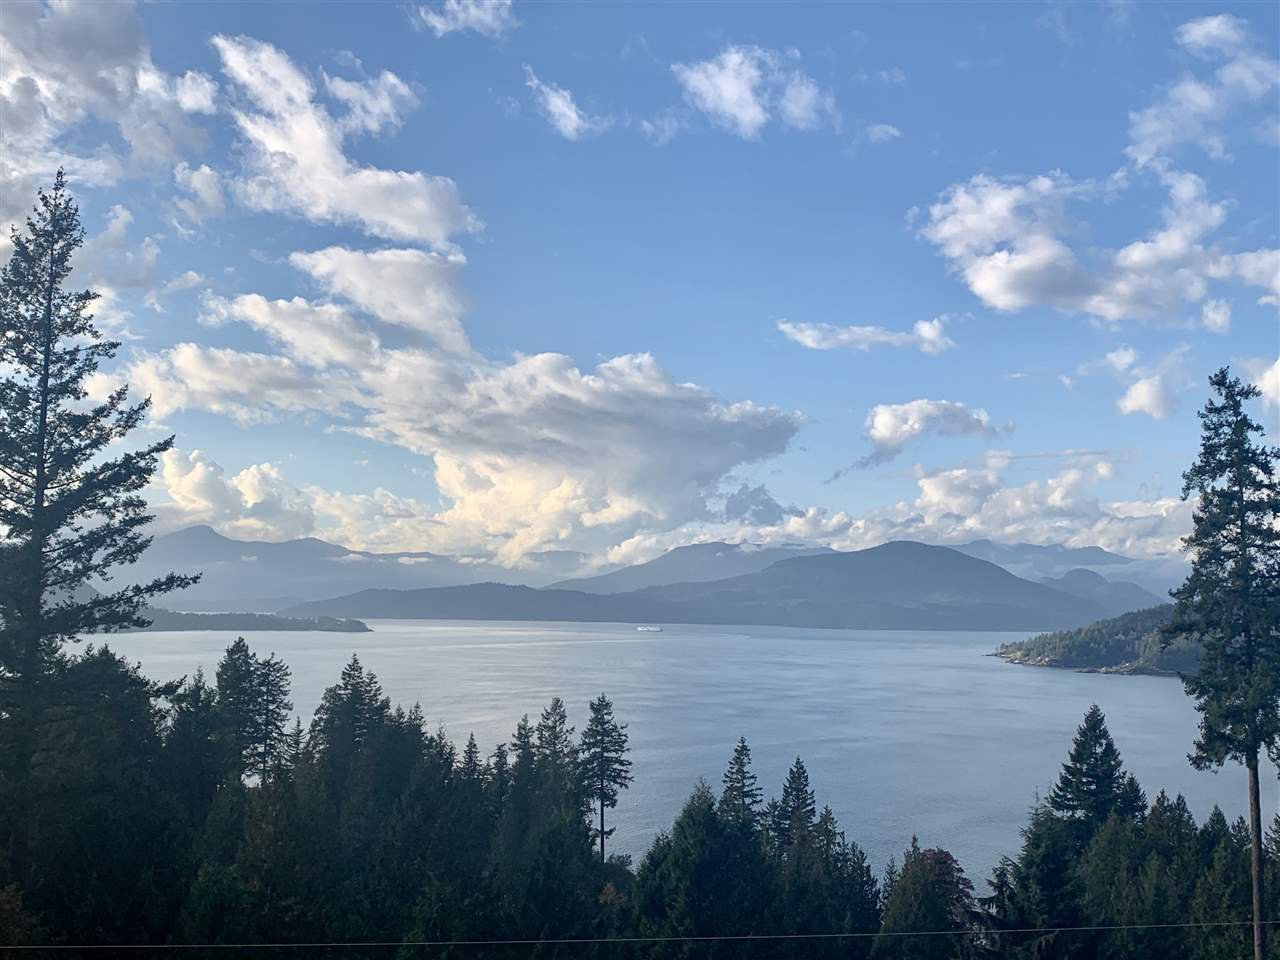 """Main Photo: 8555 SEASCAPE Lane in West Vancouver: Howe Sound Townhouse for sale in """"Seascapes"""" : MLS®# R2512079"""